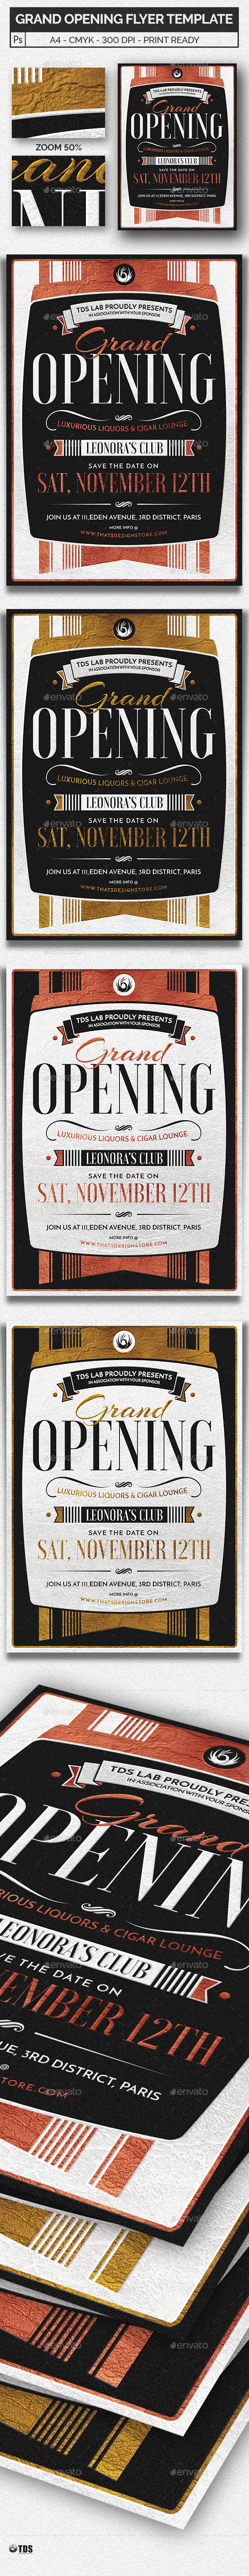 Grand Opening Flyer Template by lou606 – Grand Opening Flyer Template